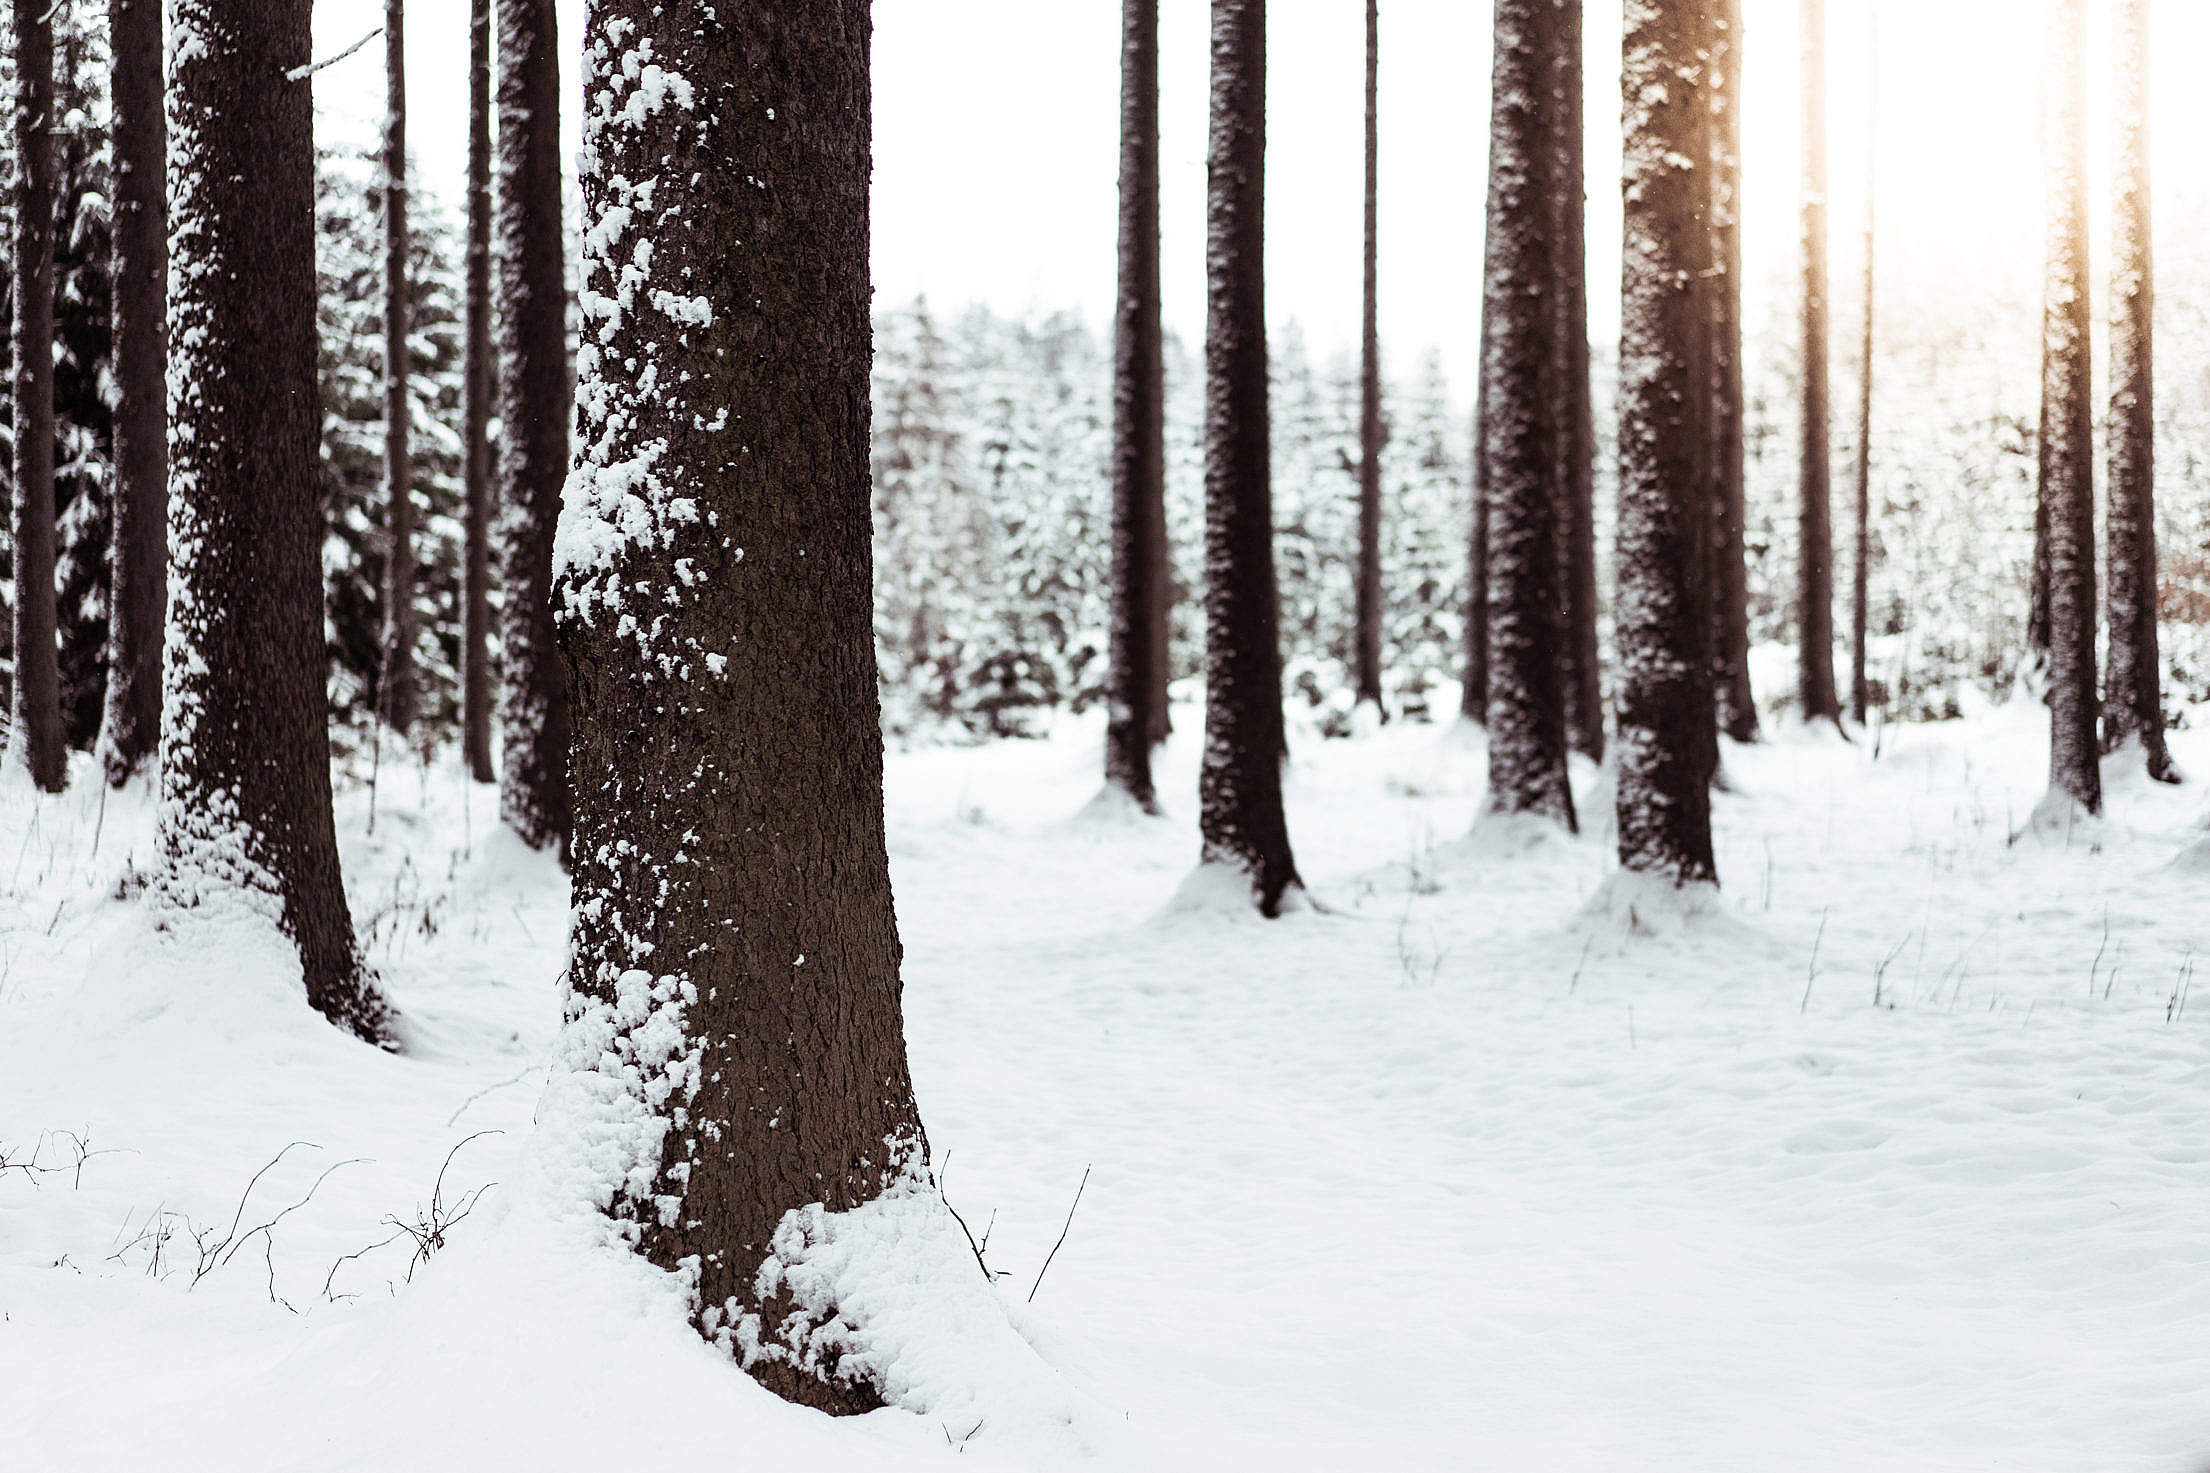 Download Snow in Forest Free Stock Photo